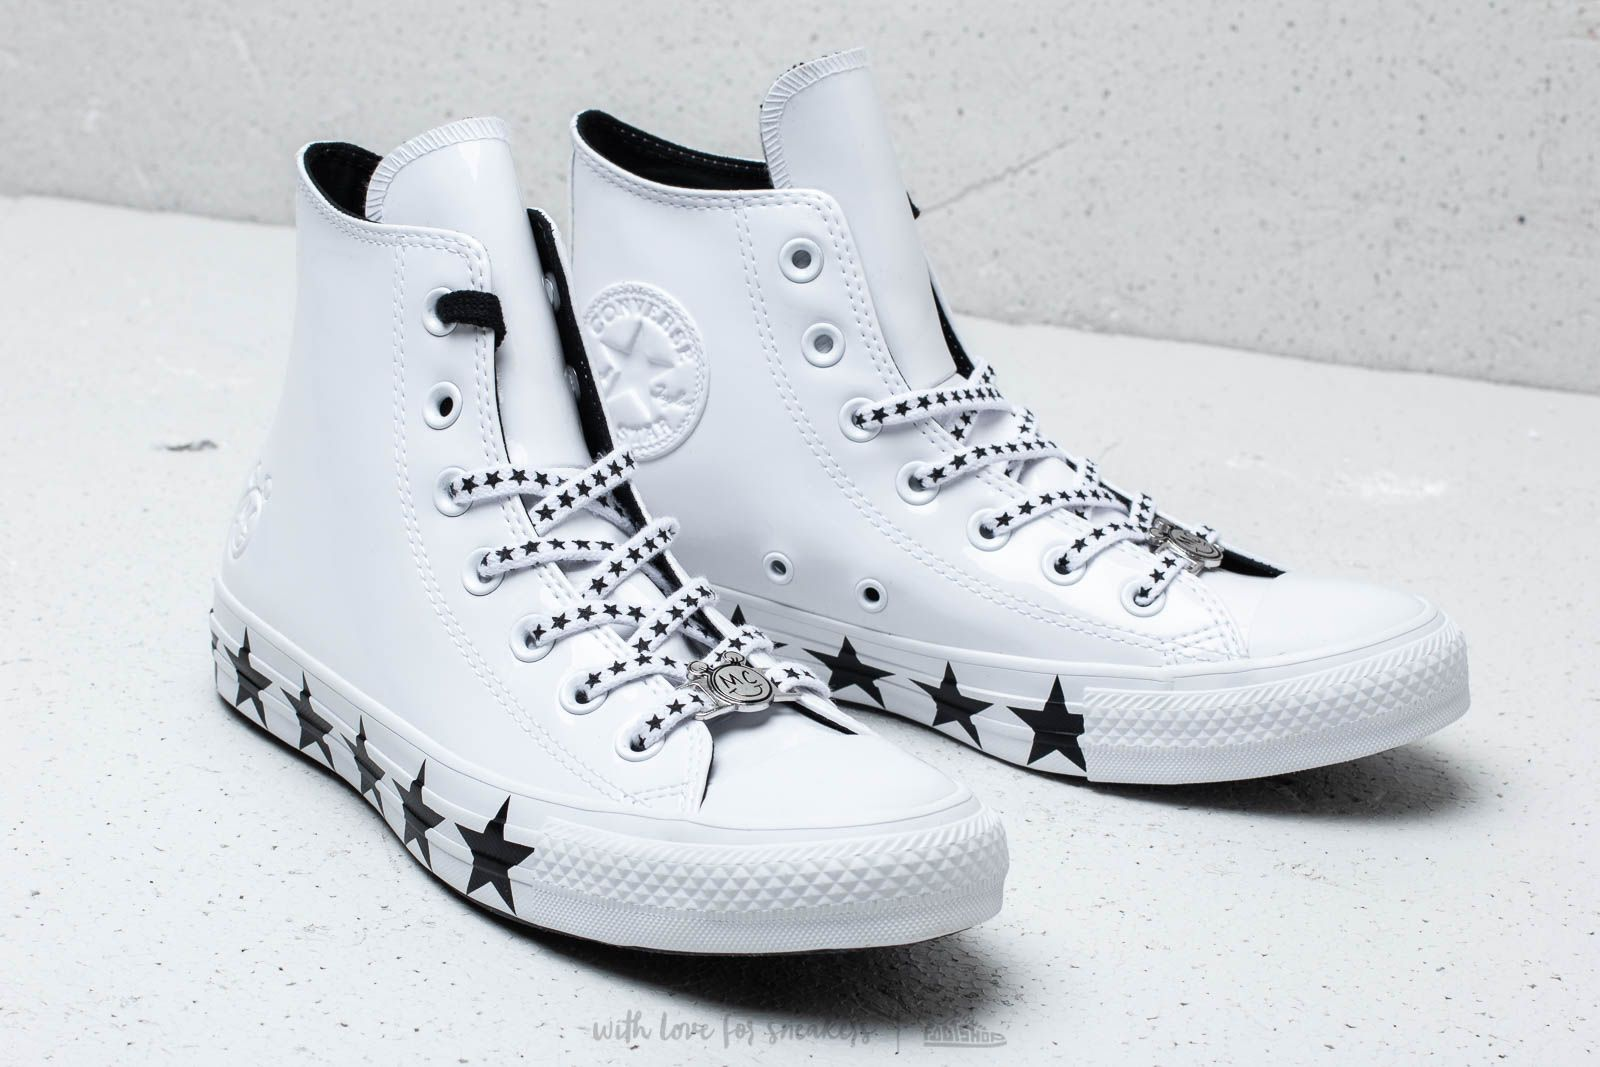 Converse x Miley Cyrus Chuck Taylor All Star Hi White Black